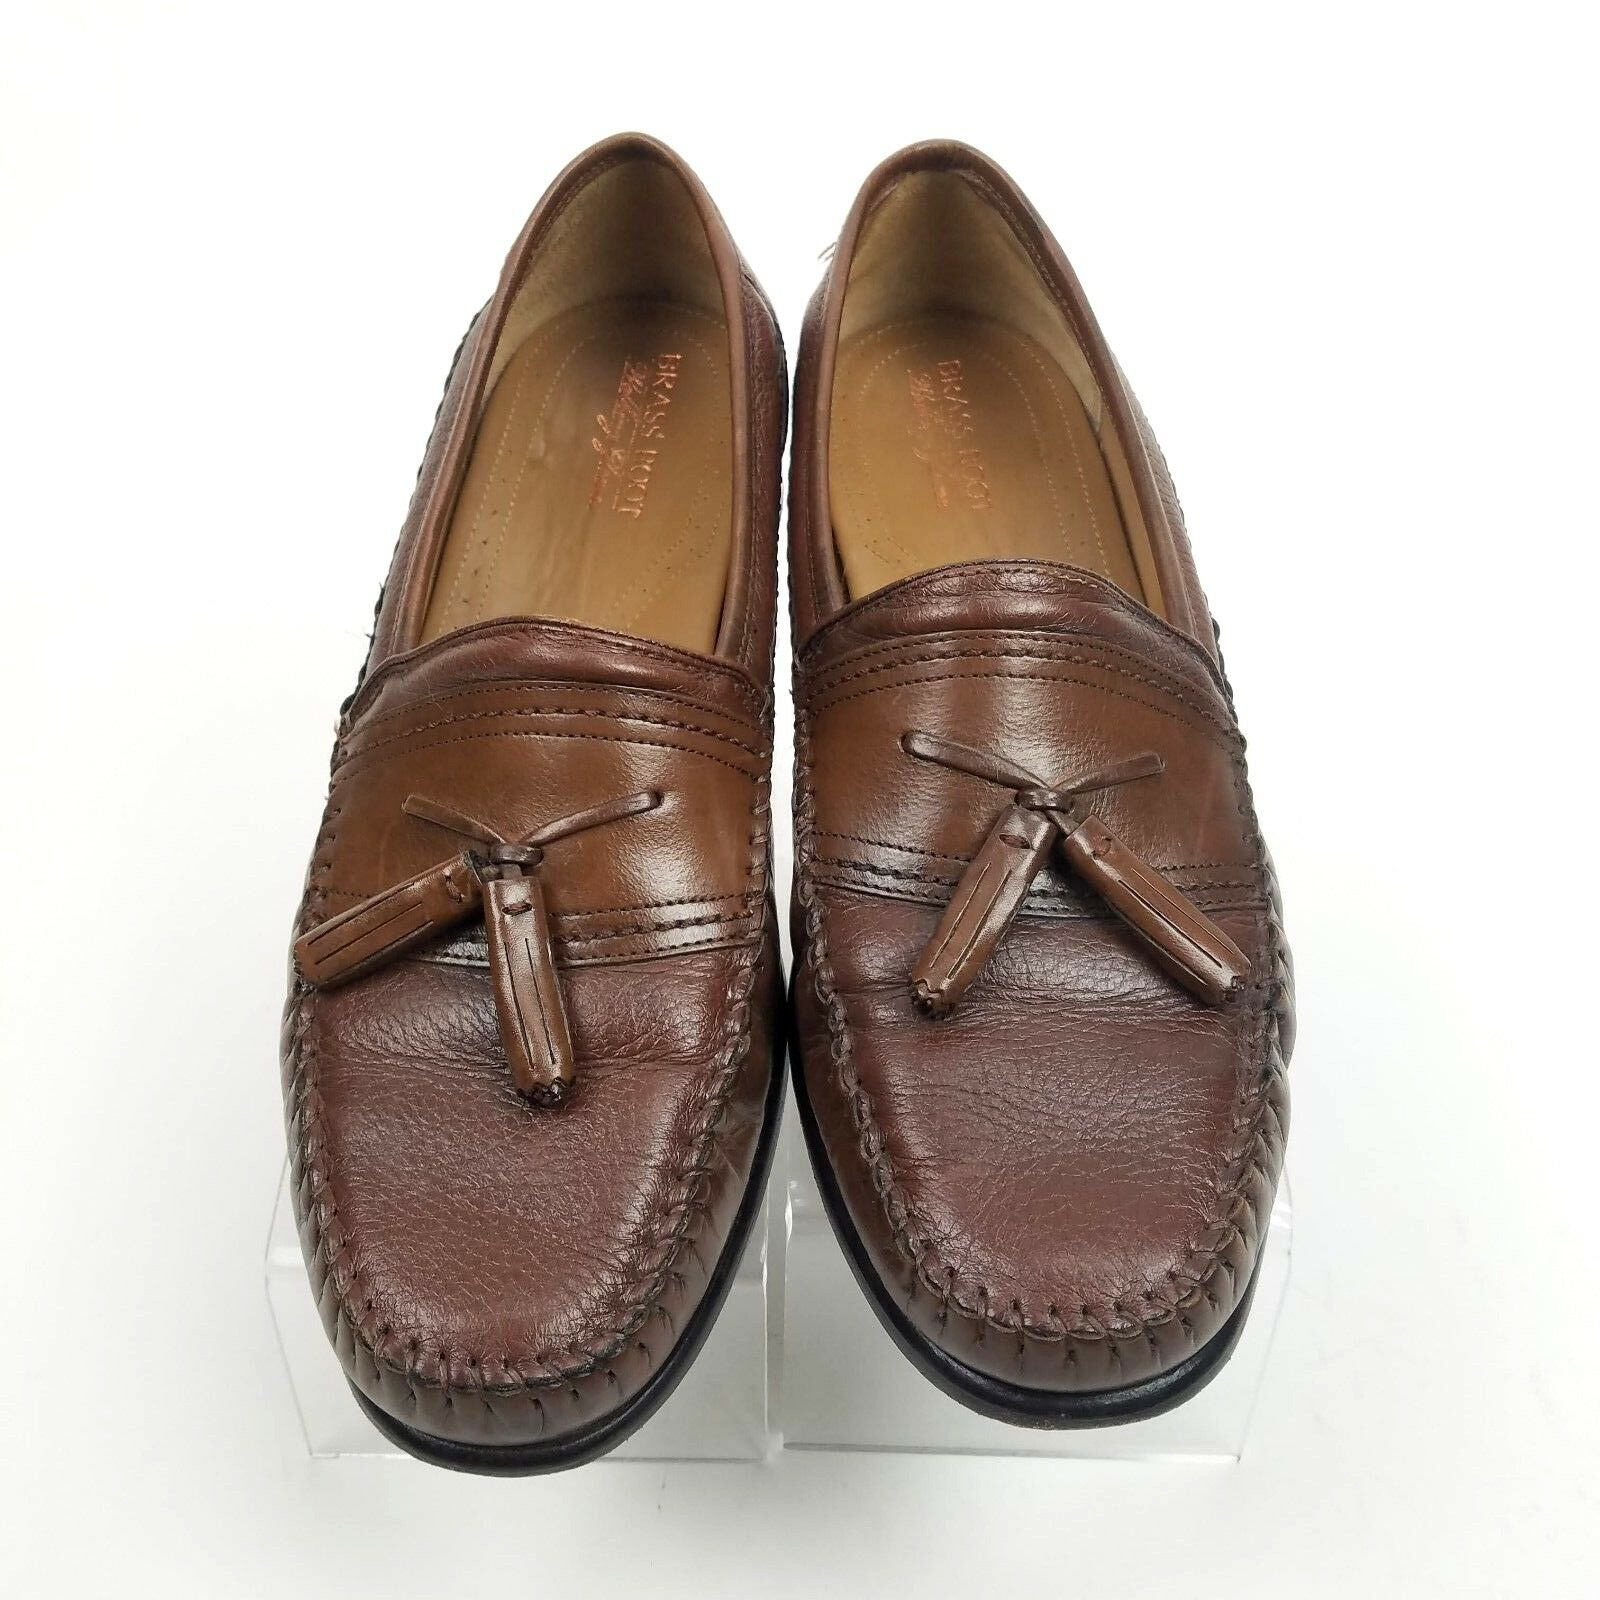 BRASS BOOT Men's Brown Leather Tassel Loafers shoes Sz 11.5 Med